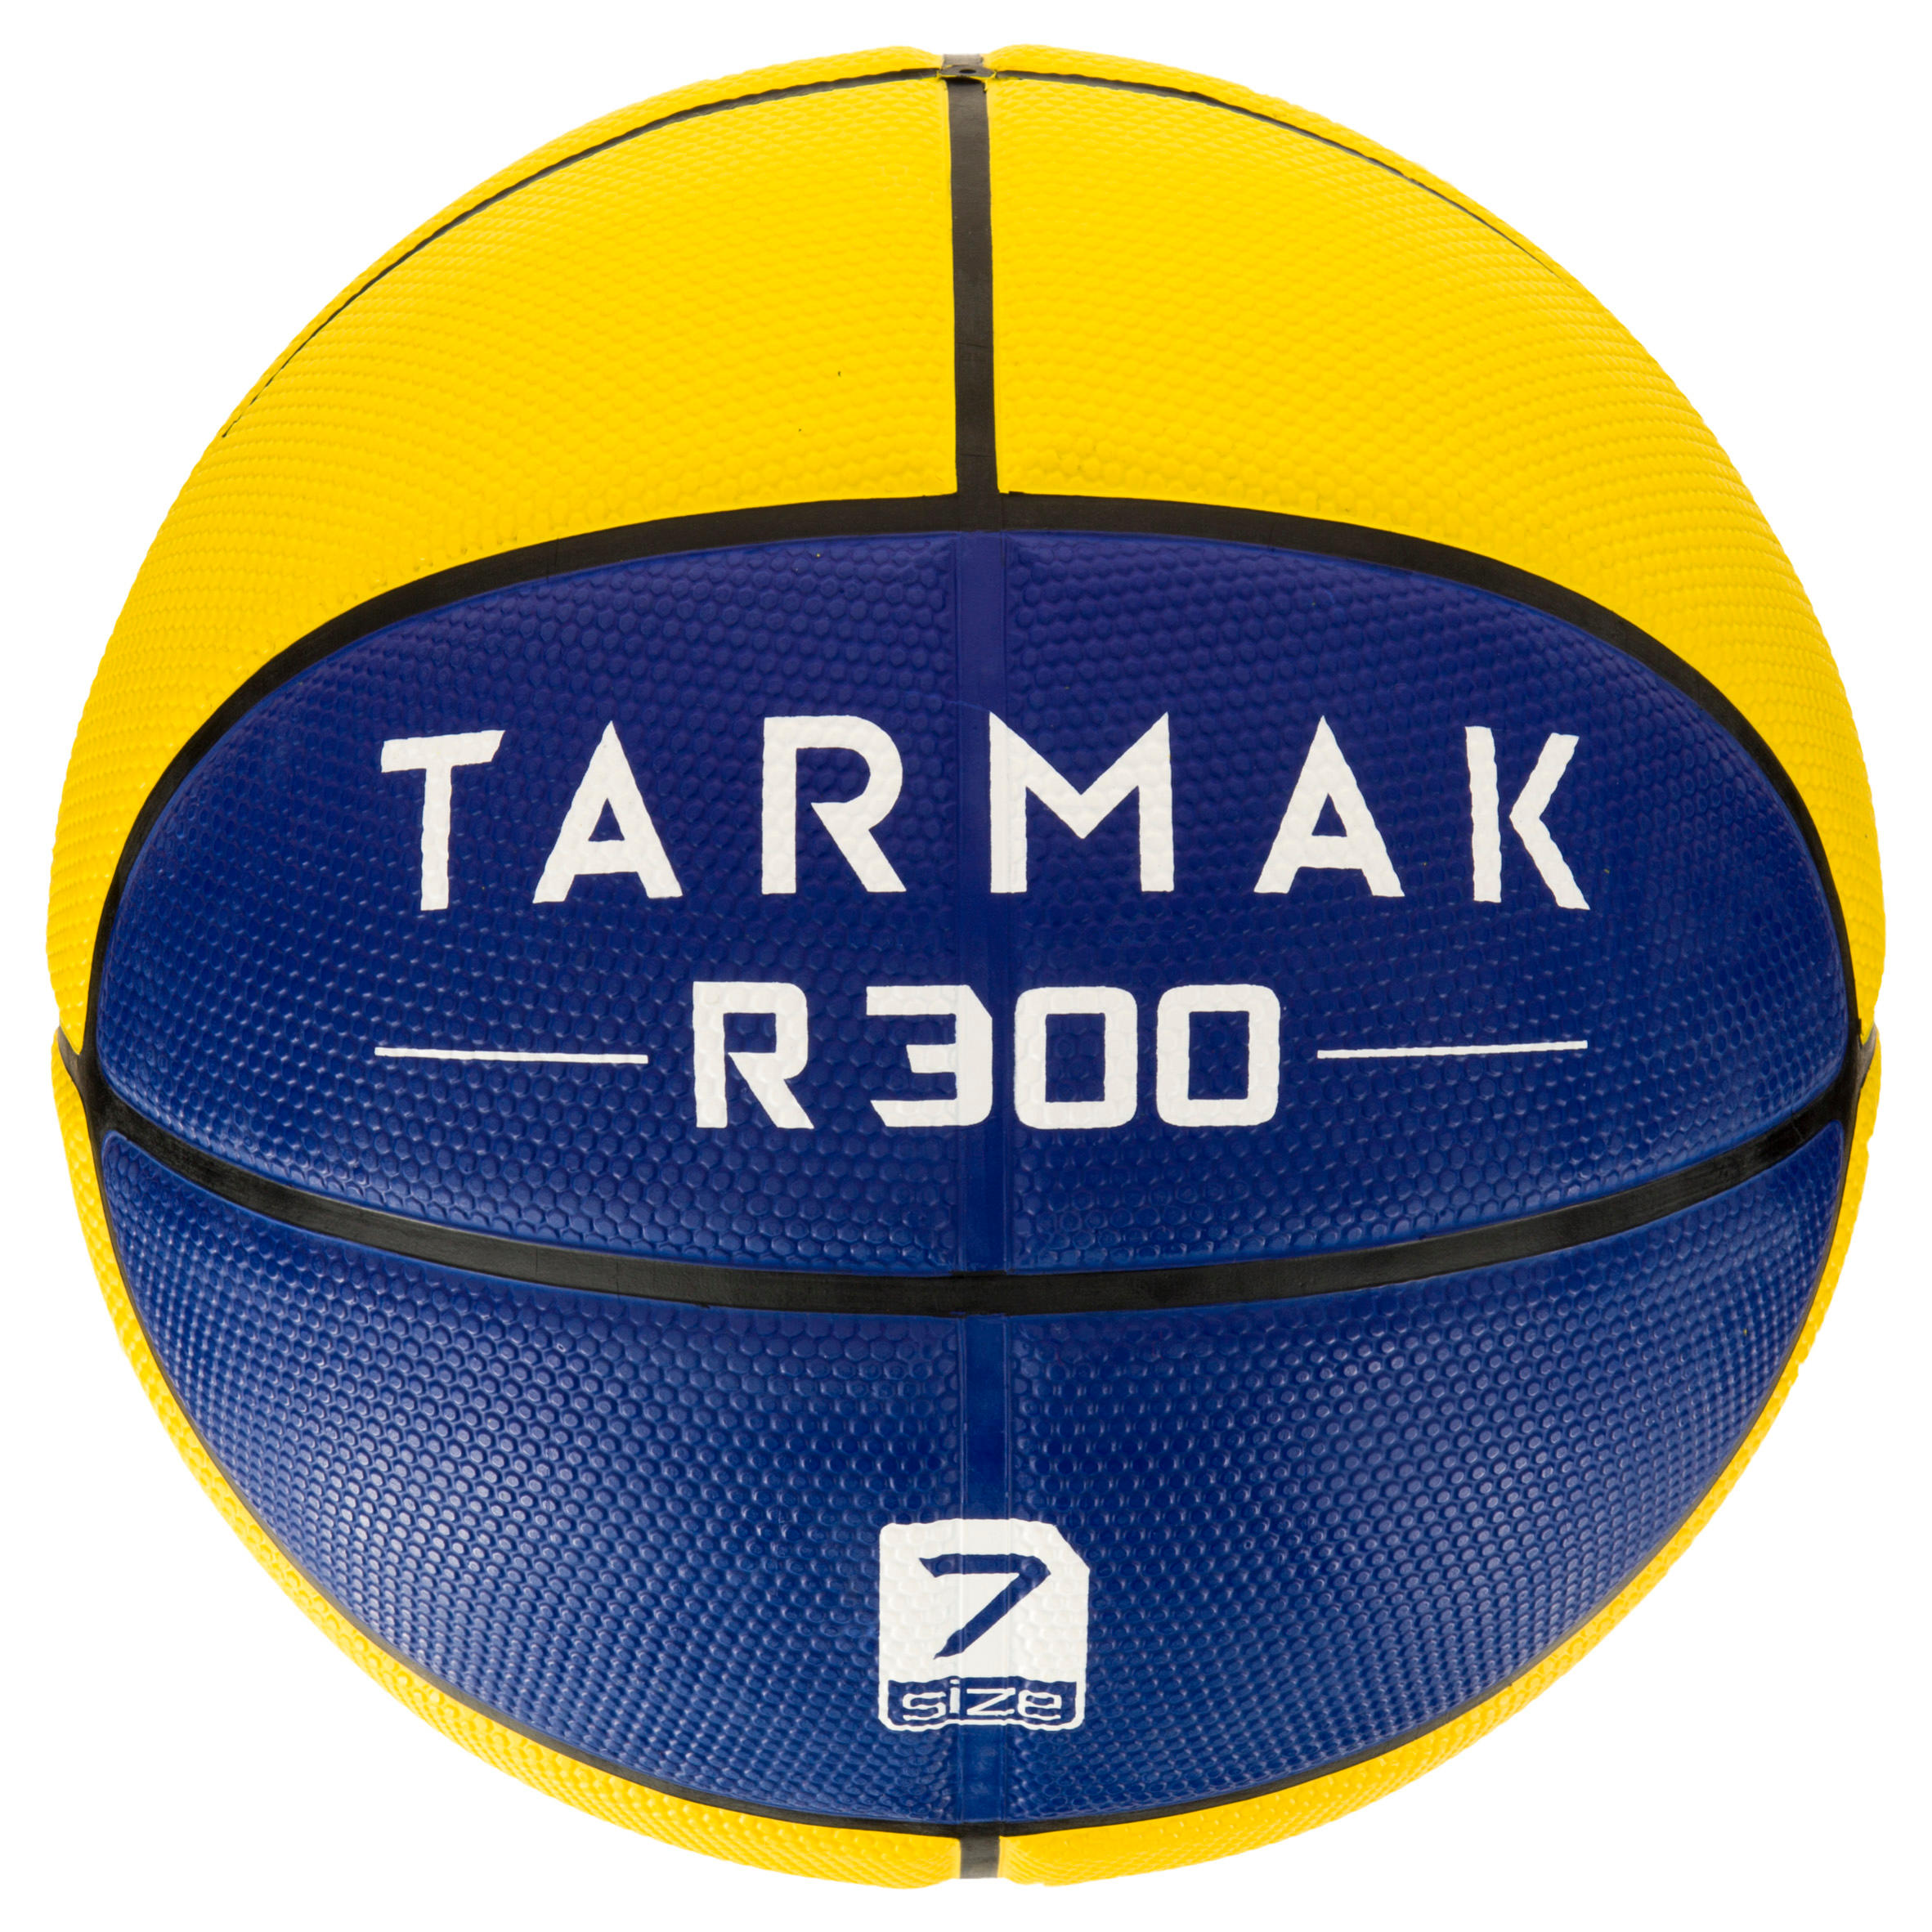 R300 Size 7 Basketball - Yellow/Blue. Durable. Ages 14 and up.